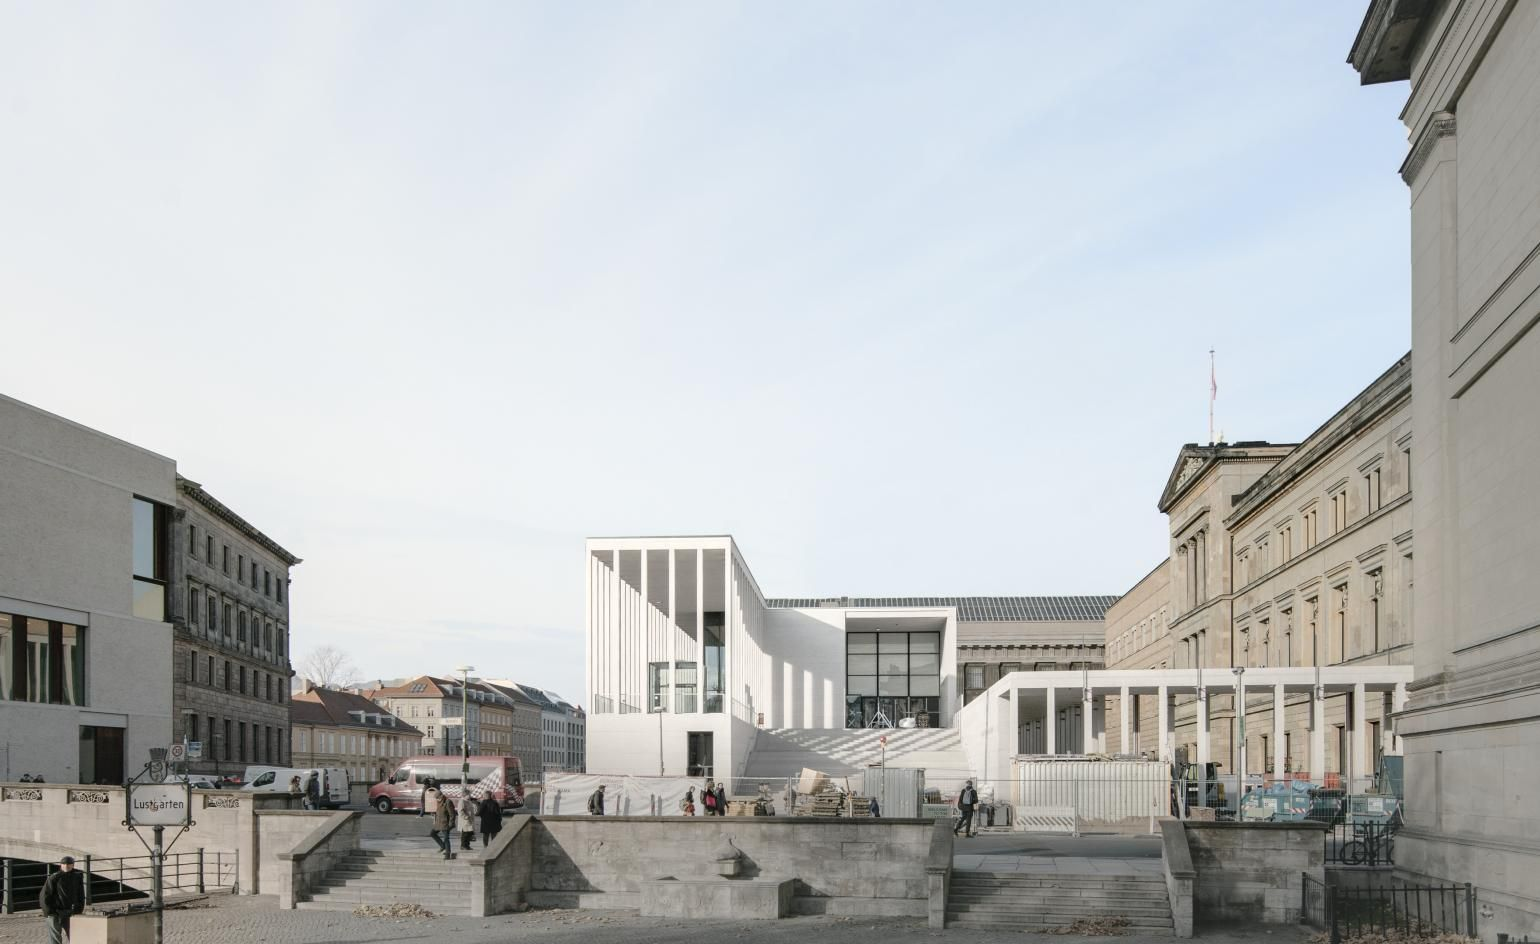 David Chipperfield S James Simon Galerie In Berlin Gears Up For Summer Opening David Chipperfield Architects Arch Building David Chipperfield Architecture